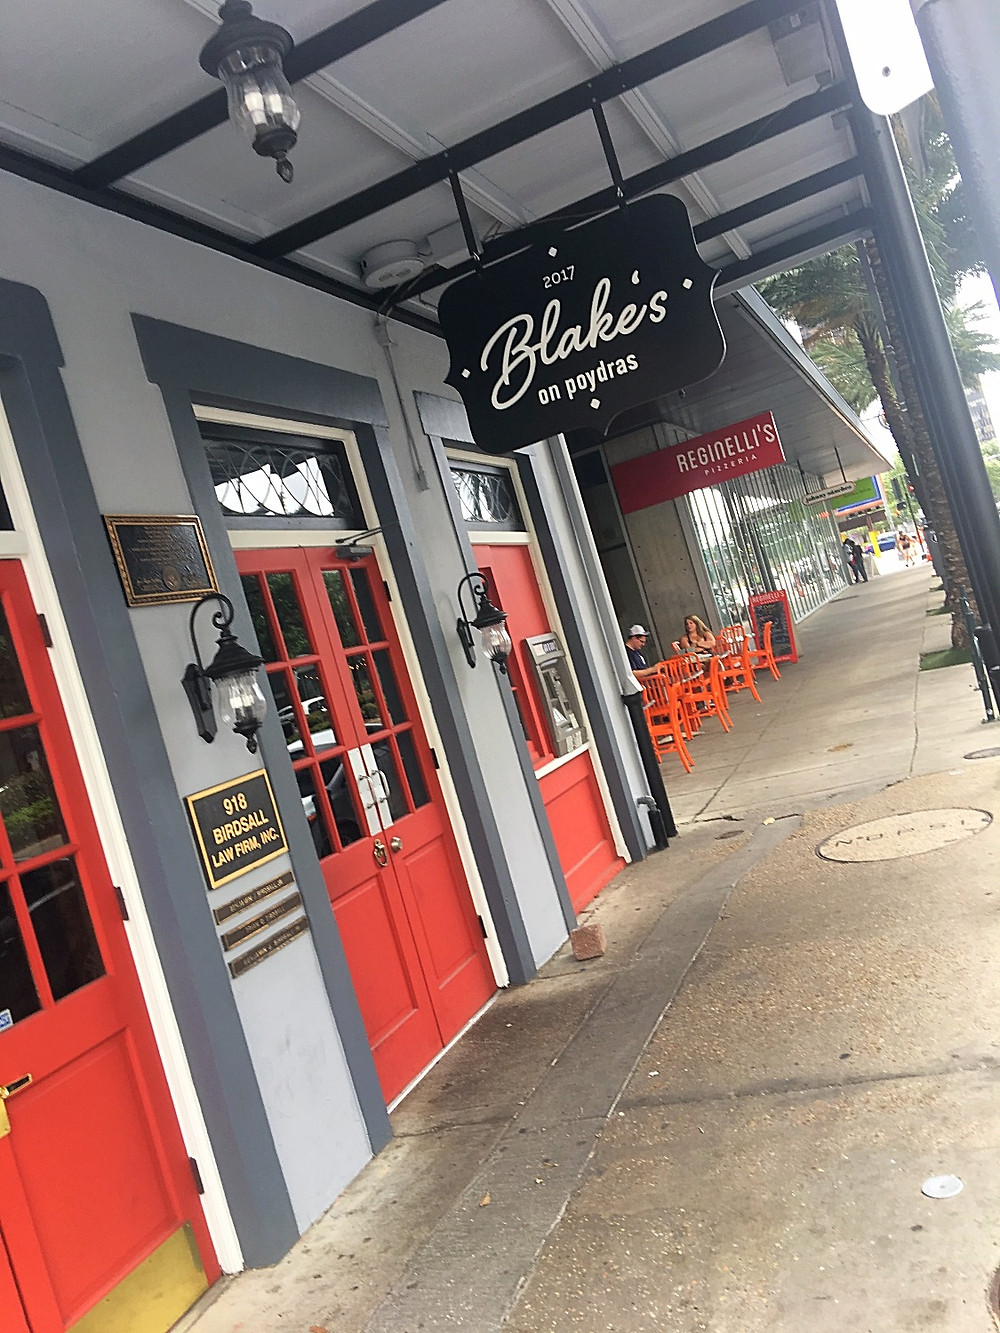 Blake's on Polydras in New Orleans